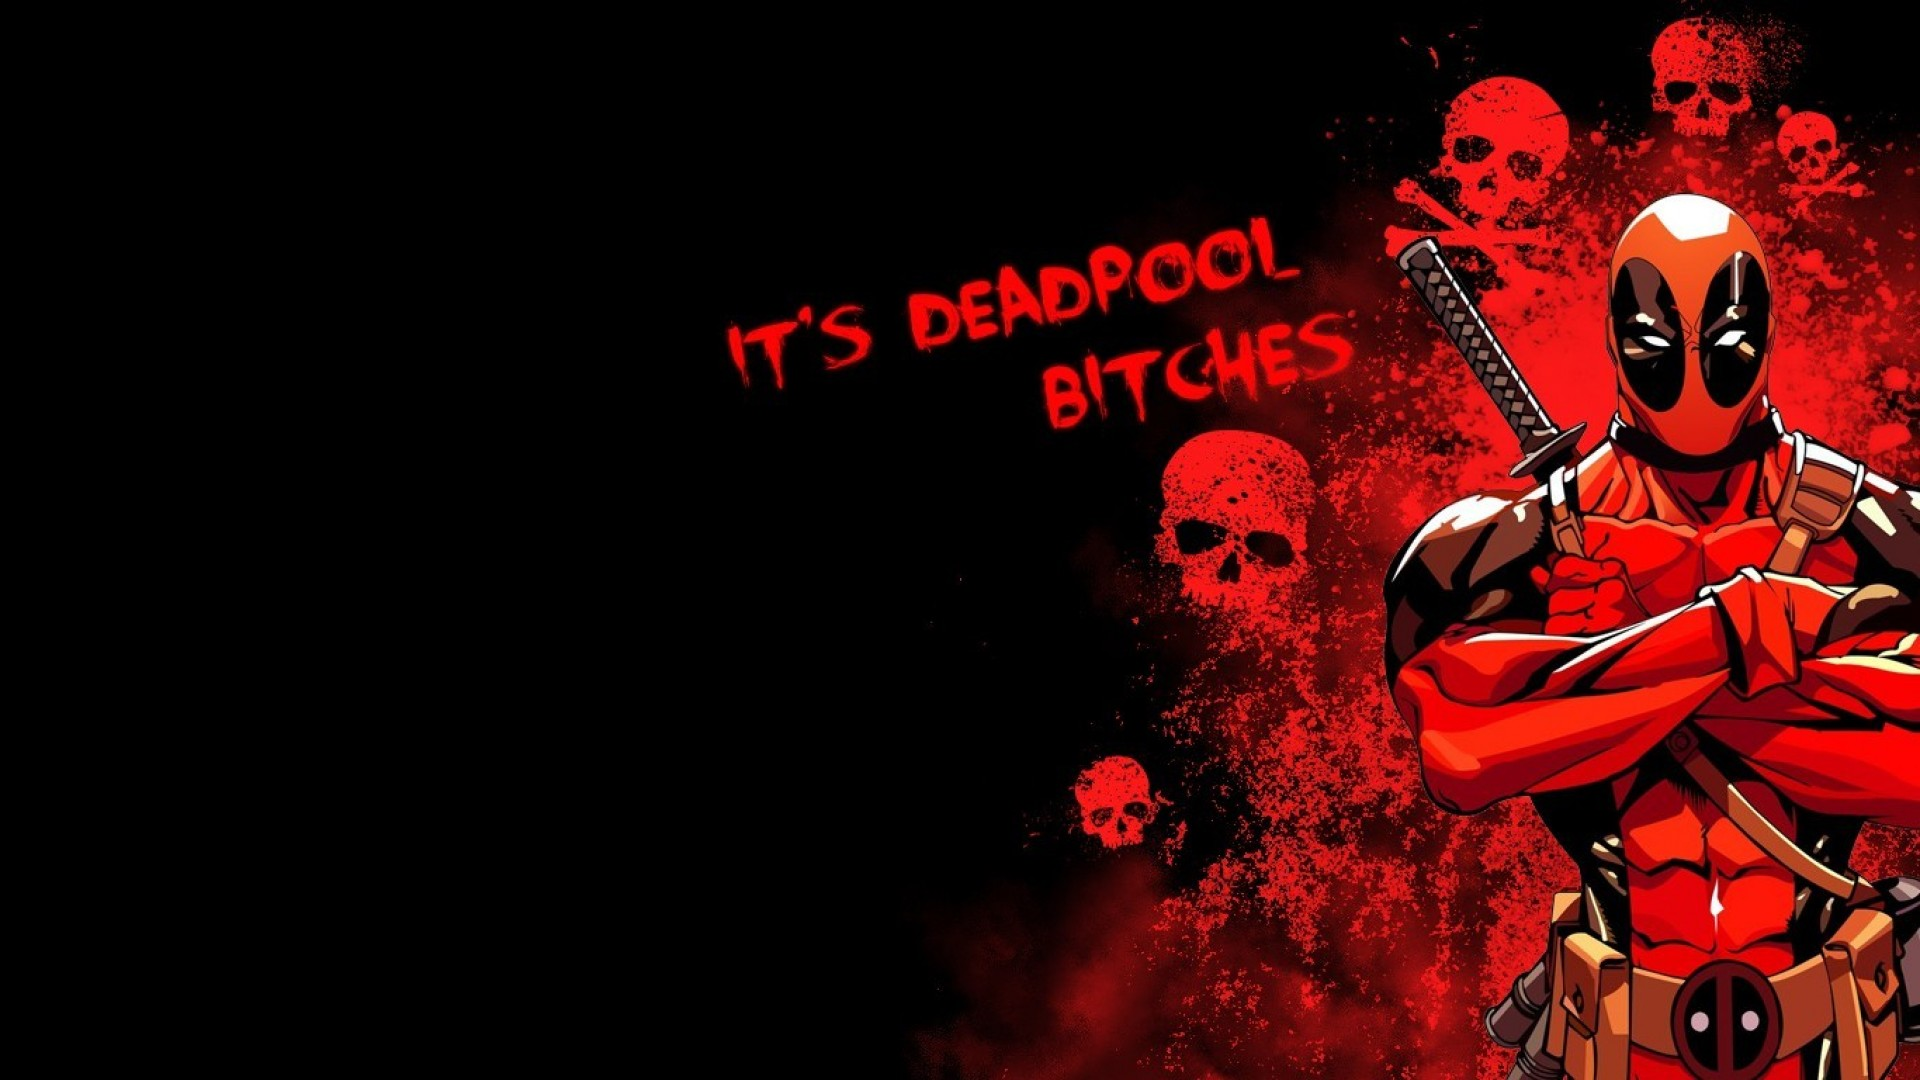 deadpool wallpaper hd 1080p - photo #3